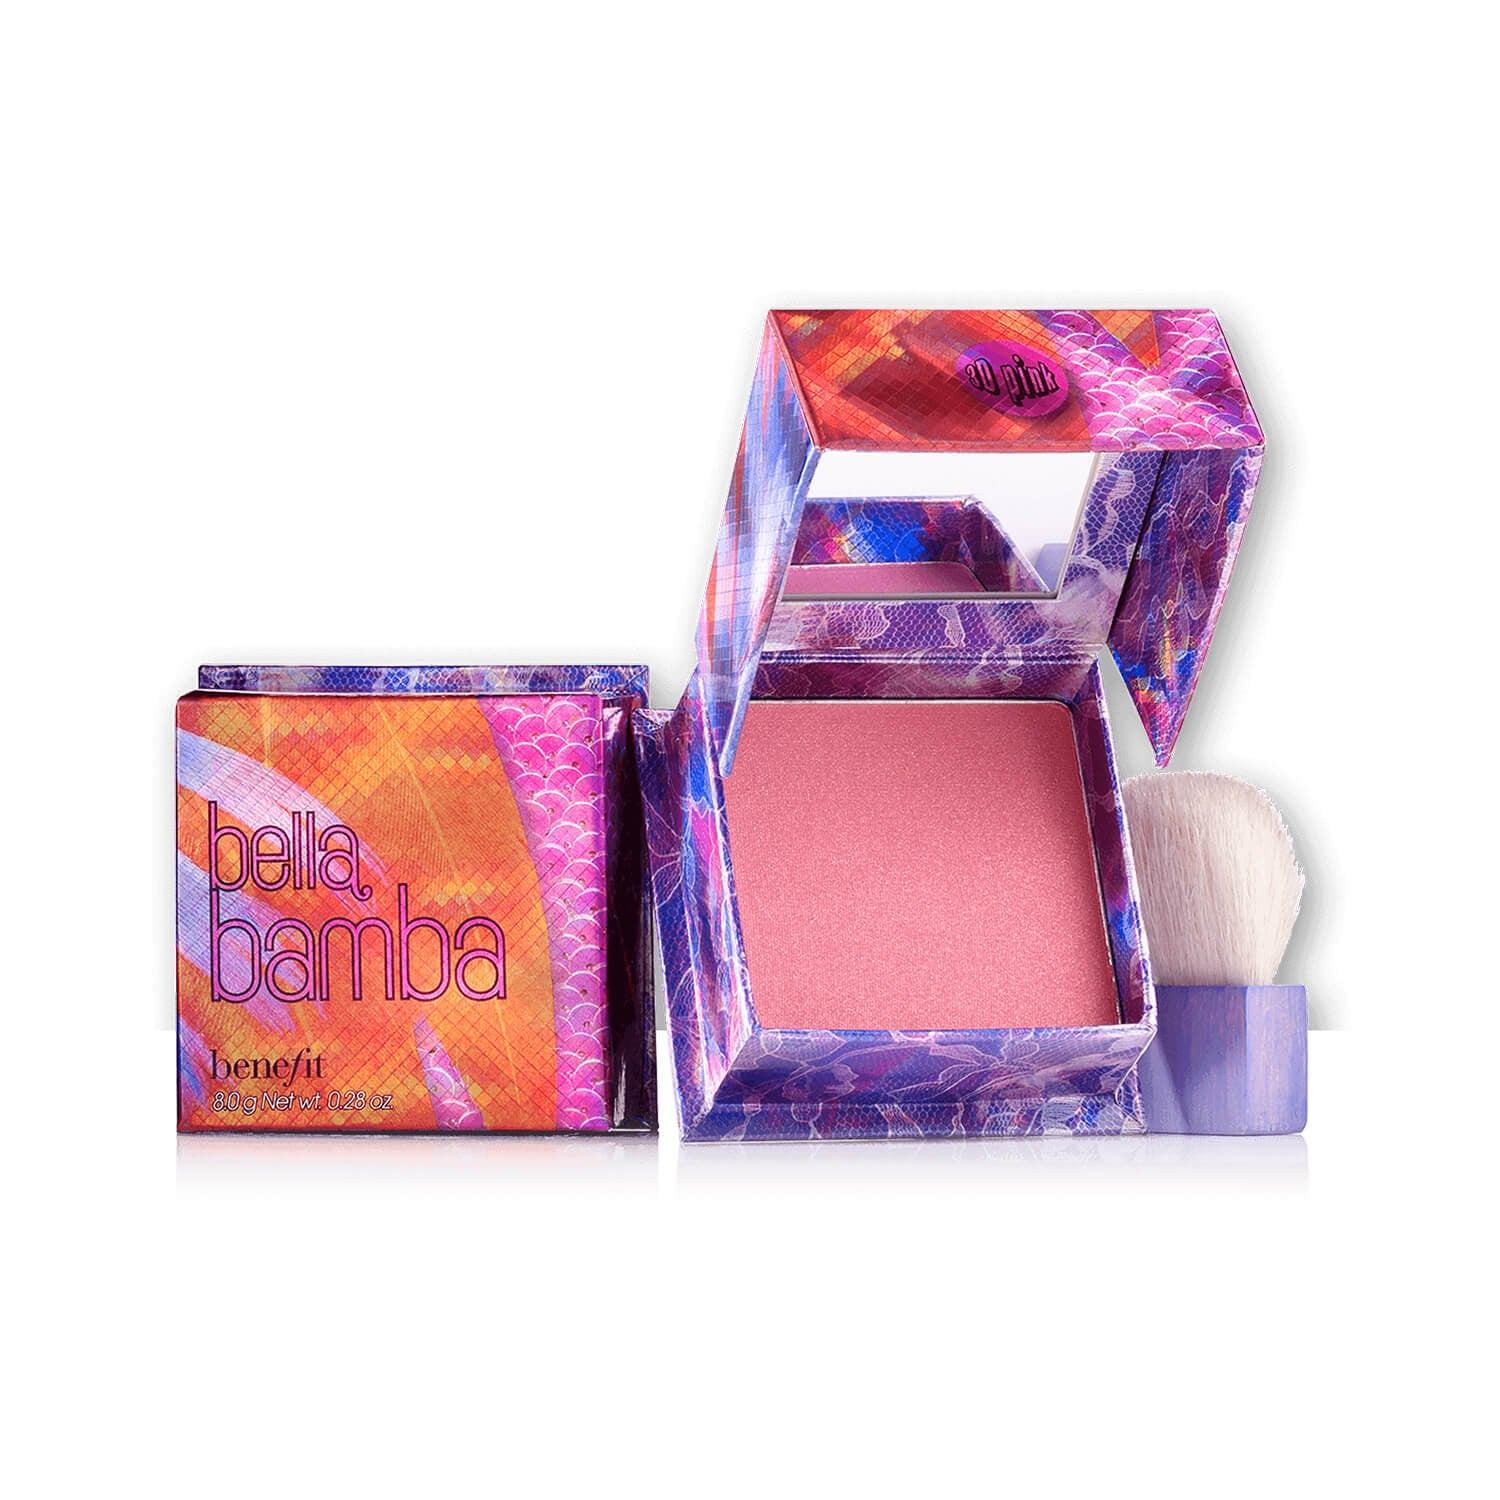 Benefit Cosmetics Bella Bamba a 3D Brightening Pink Face Powder